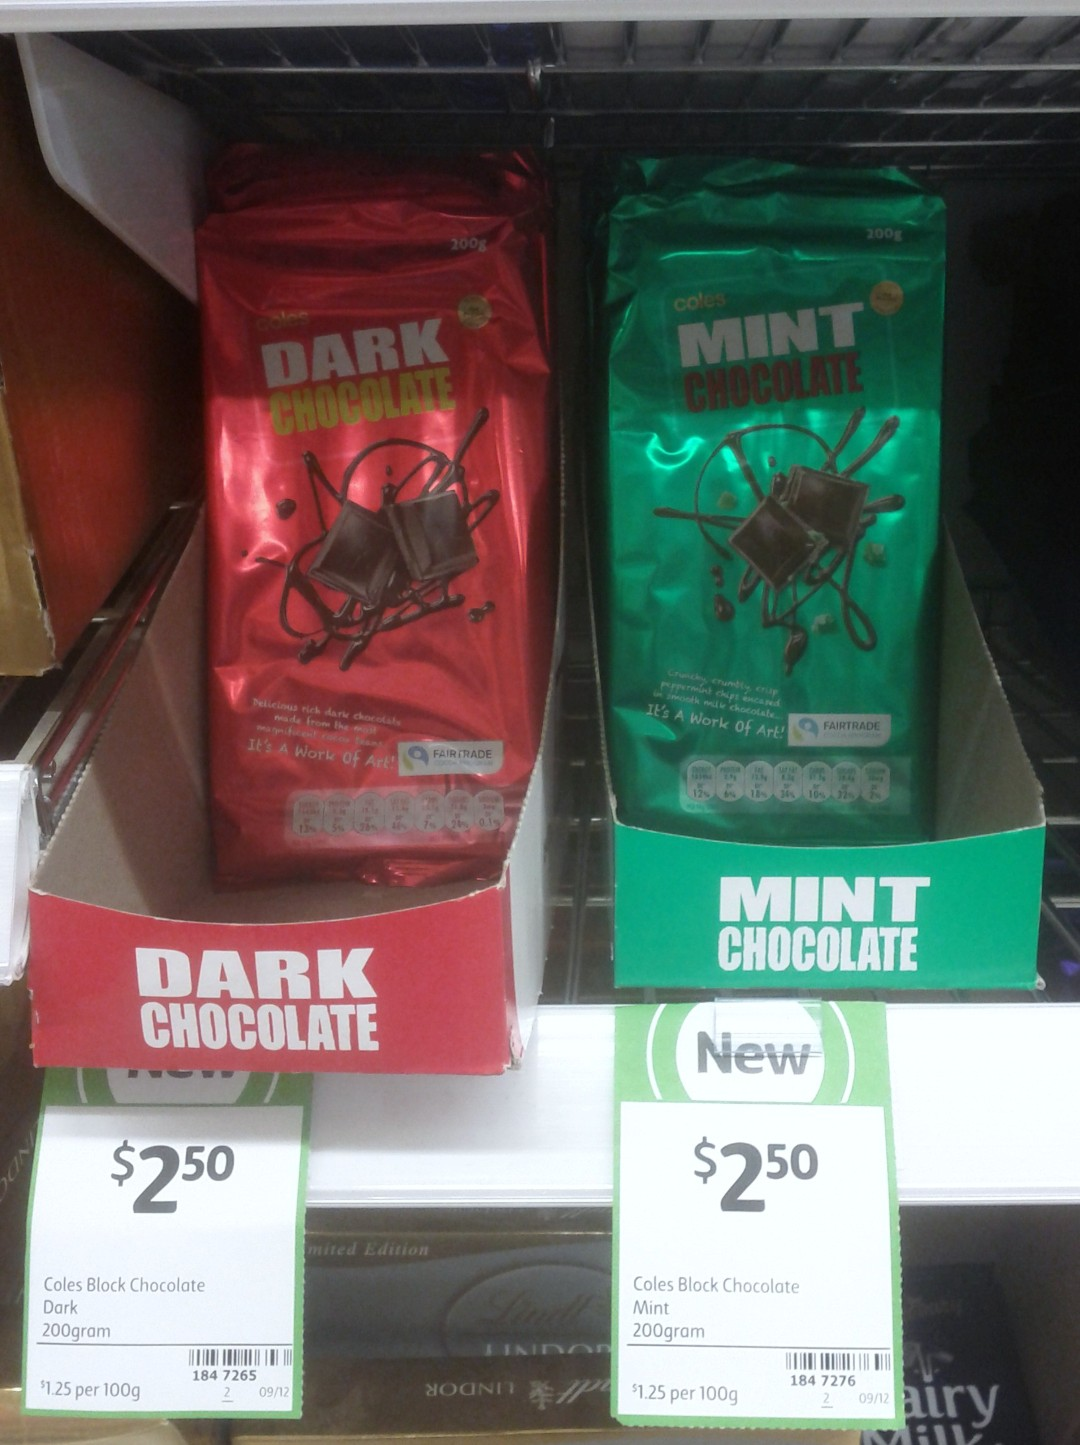 Coles 200g Chocolate Dark, Mint